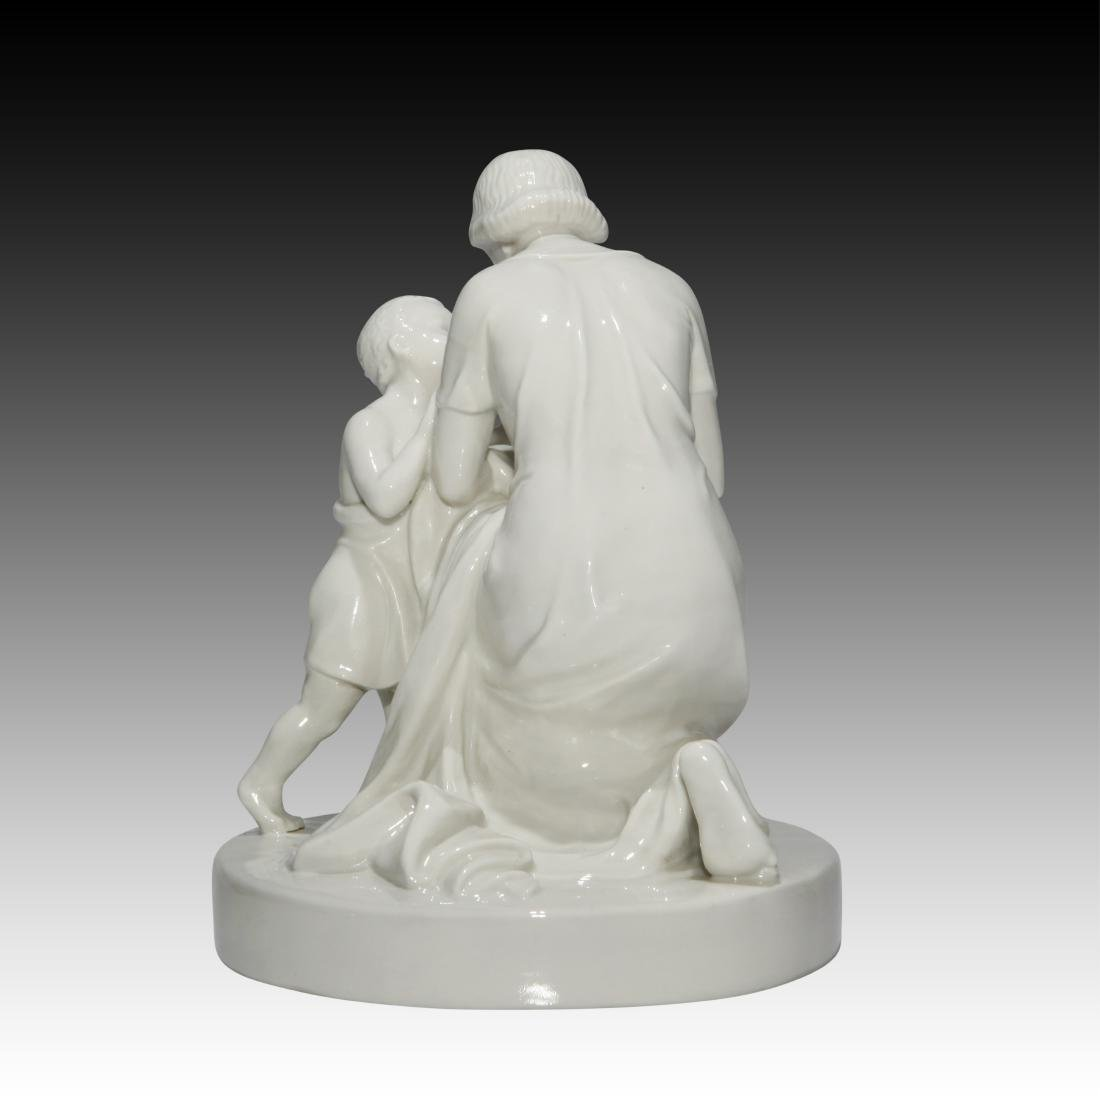 Schwarzburger Young Woman and Child Figurine - 2